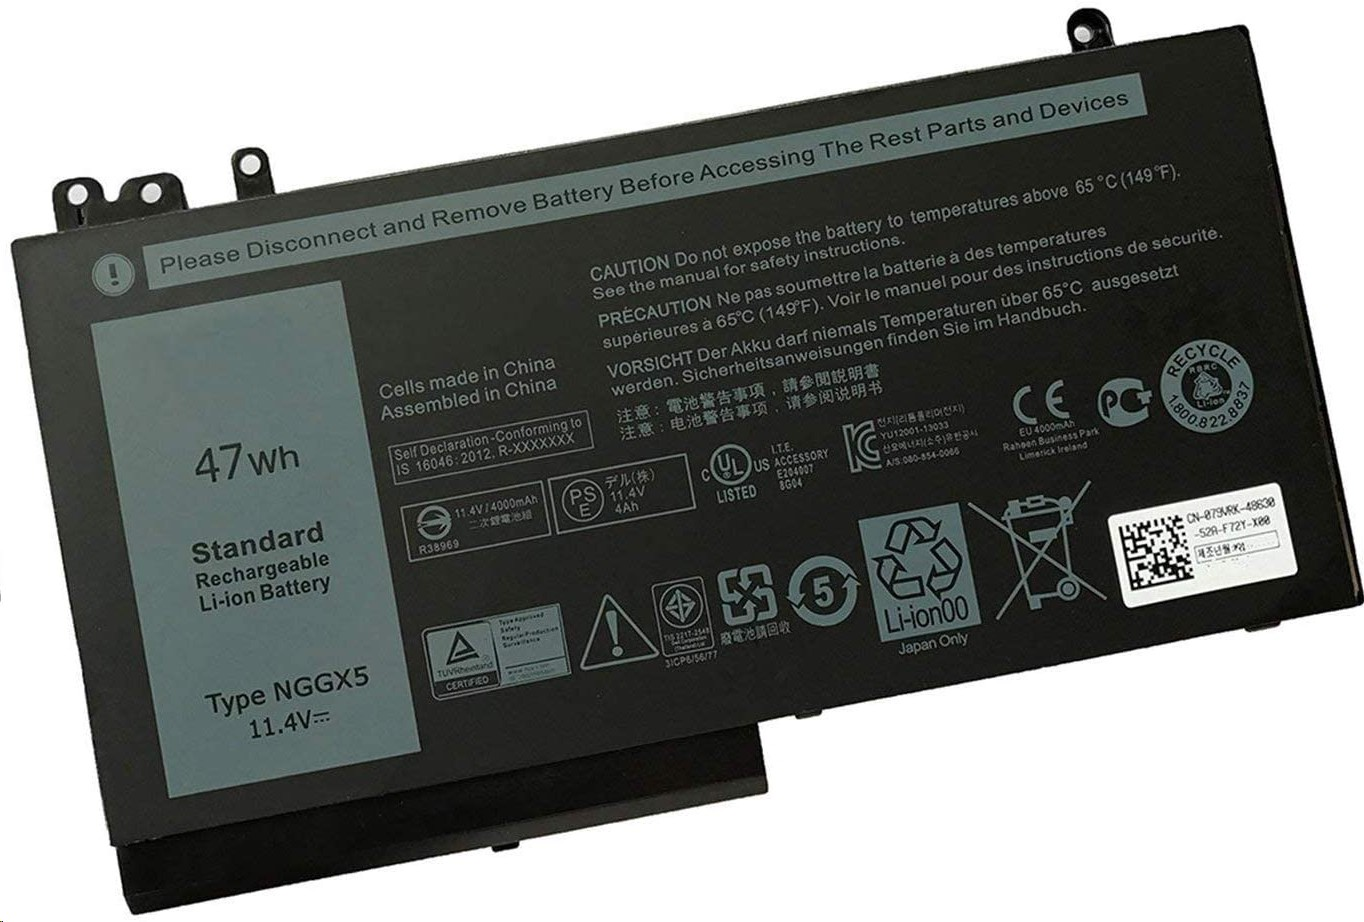 Battery Technology BTI Li-Ion 3-Cell Primary 11.4V 47Whr For Dell Latitude E5270 NGGX5-BTI